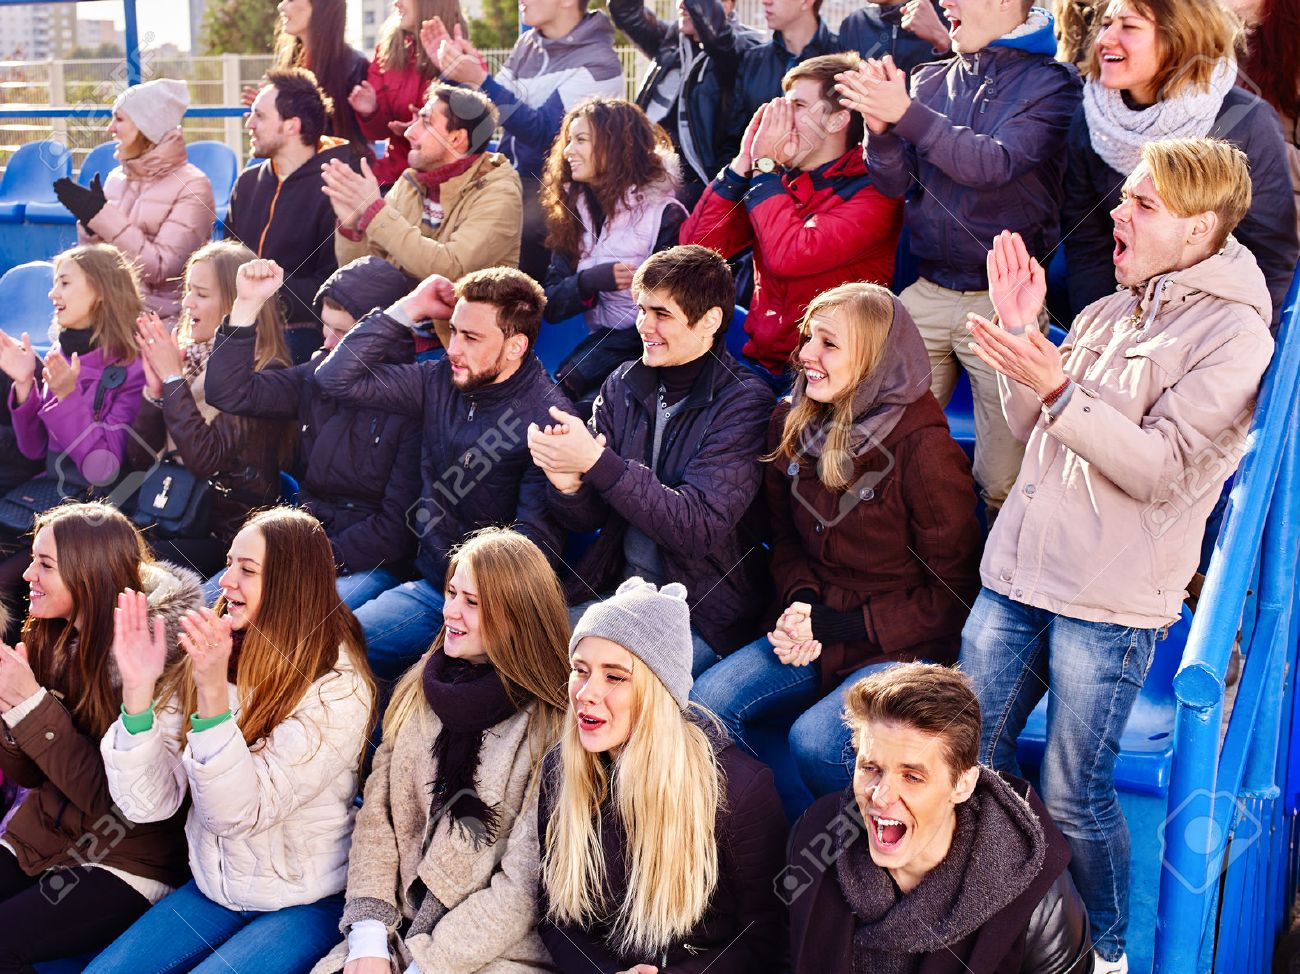 Fans cheering in stadium people applaud your favorite team and singing on tribunes. Group youth group support your favorite team. - 70689881